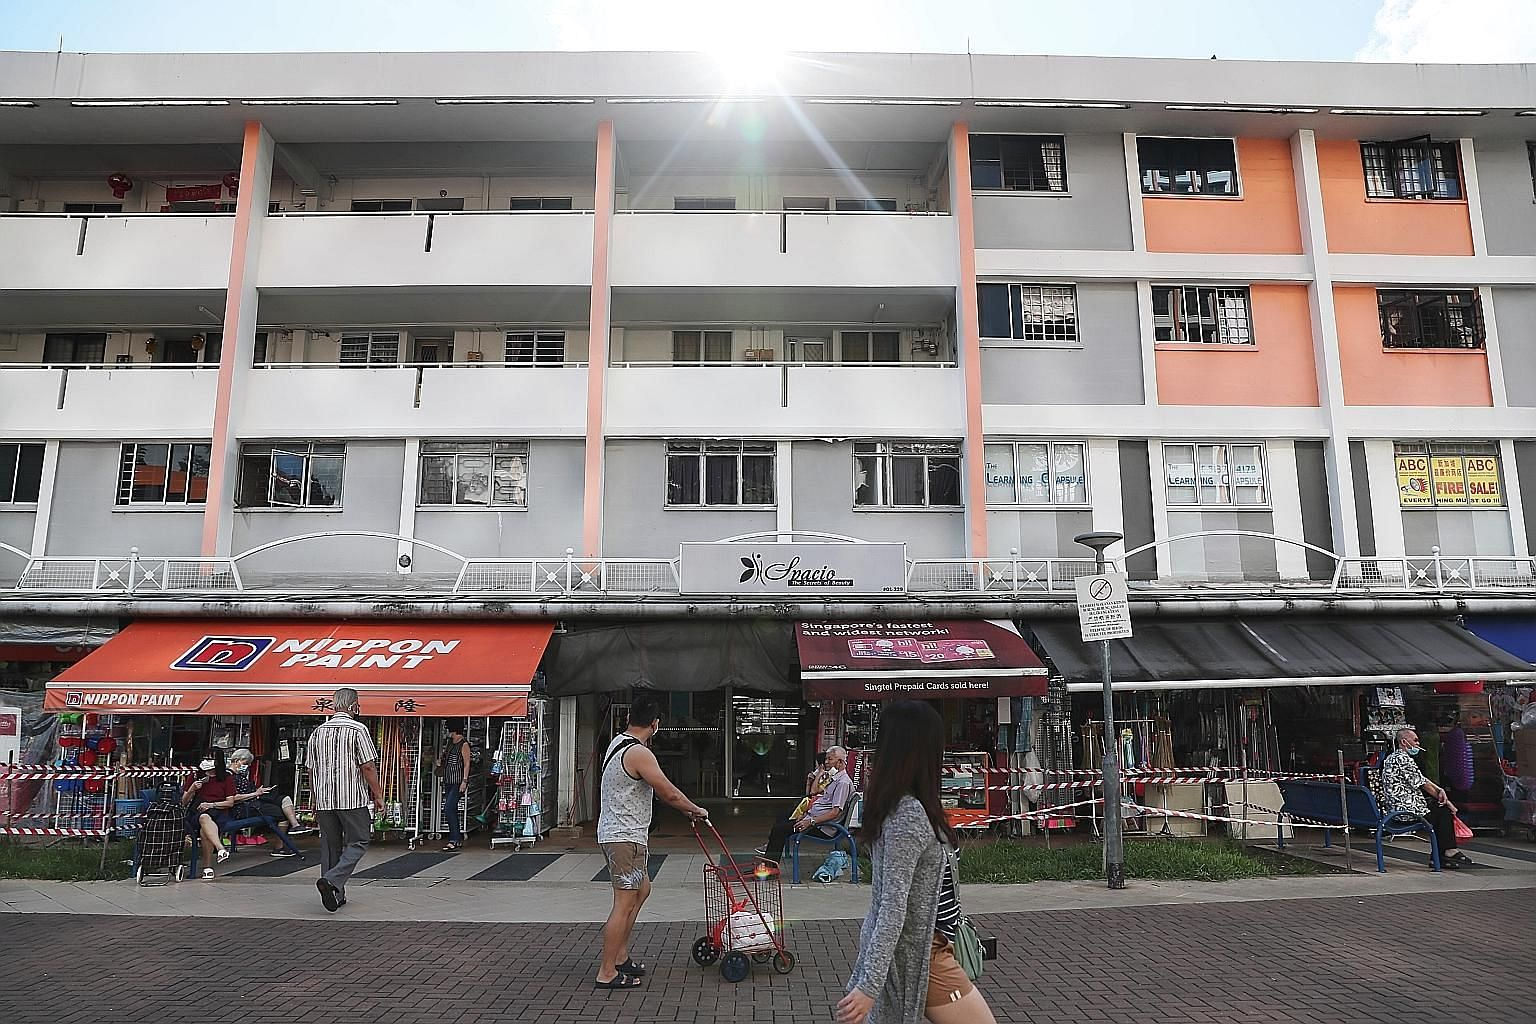 Landlords who are unable to reach an agreement with pandemic-affected tenants on whether the tenants are eligible for rental waivers can apply to have assessors appointed by the Ministry of Law make a determination. ST PHOTO: KELVIN CHNG